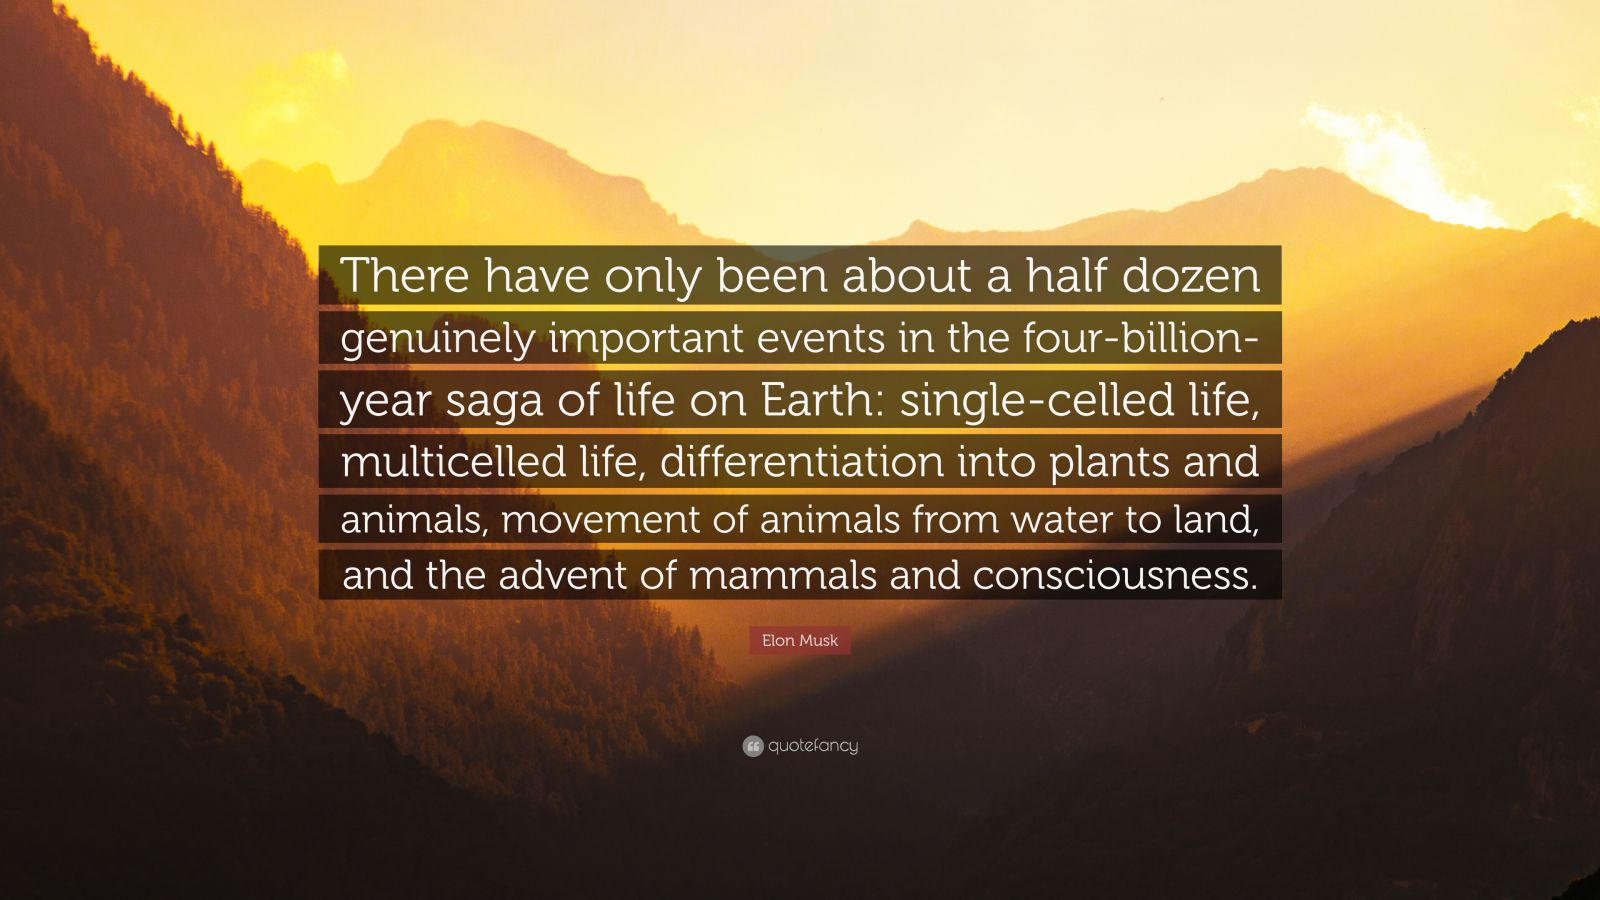 "Elon Musk Quote: ""There have only been about a half dozen genuinely important events in the four-billion-year saga of life on Earth: single-celled life, multicelled life, differentiation into plants and animals, movement of animals from water to land, and the advent of mammals and consciousness."""